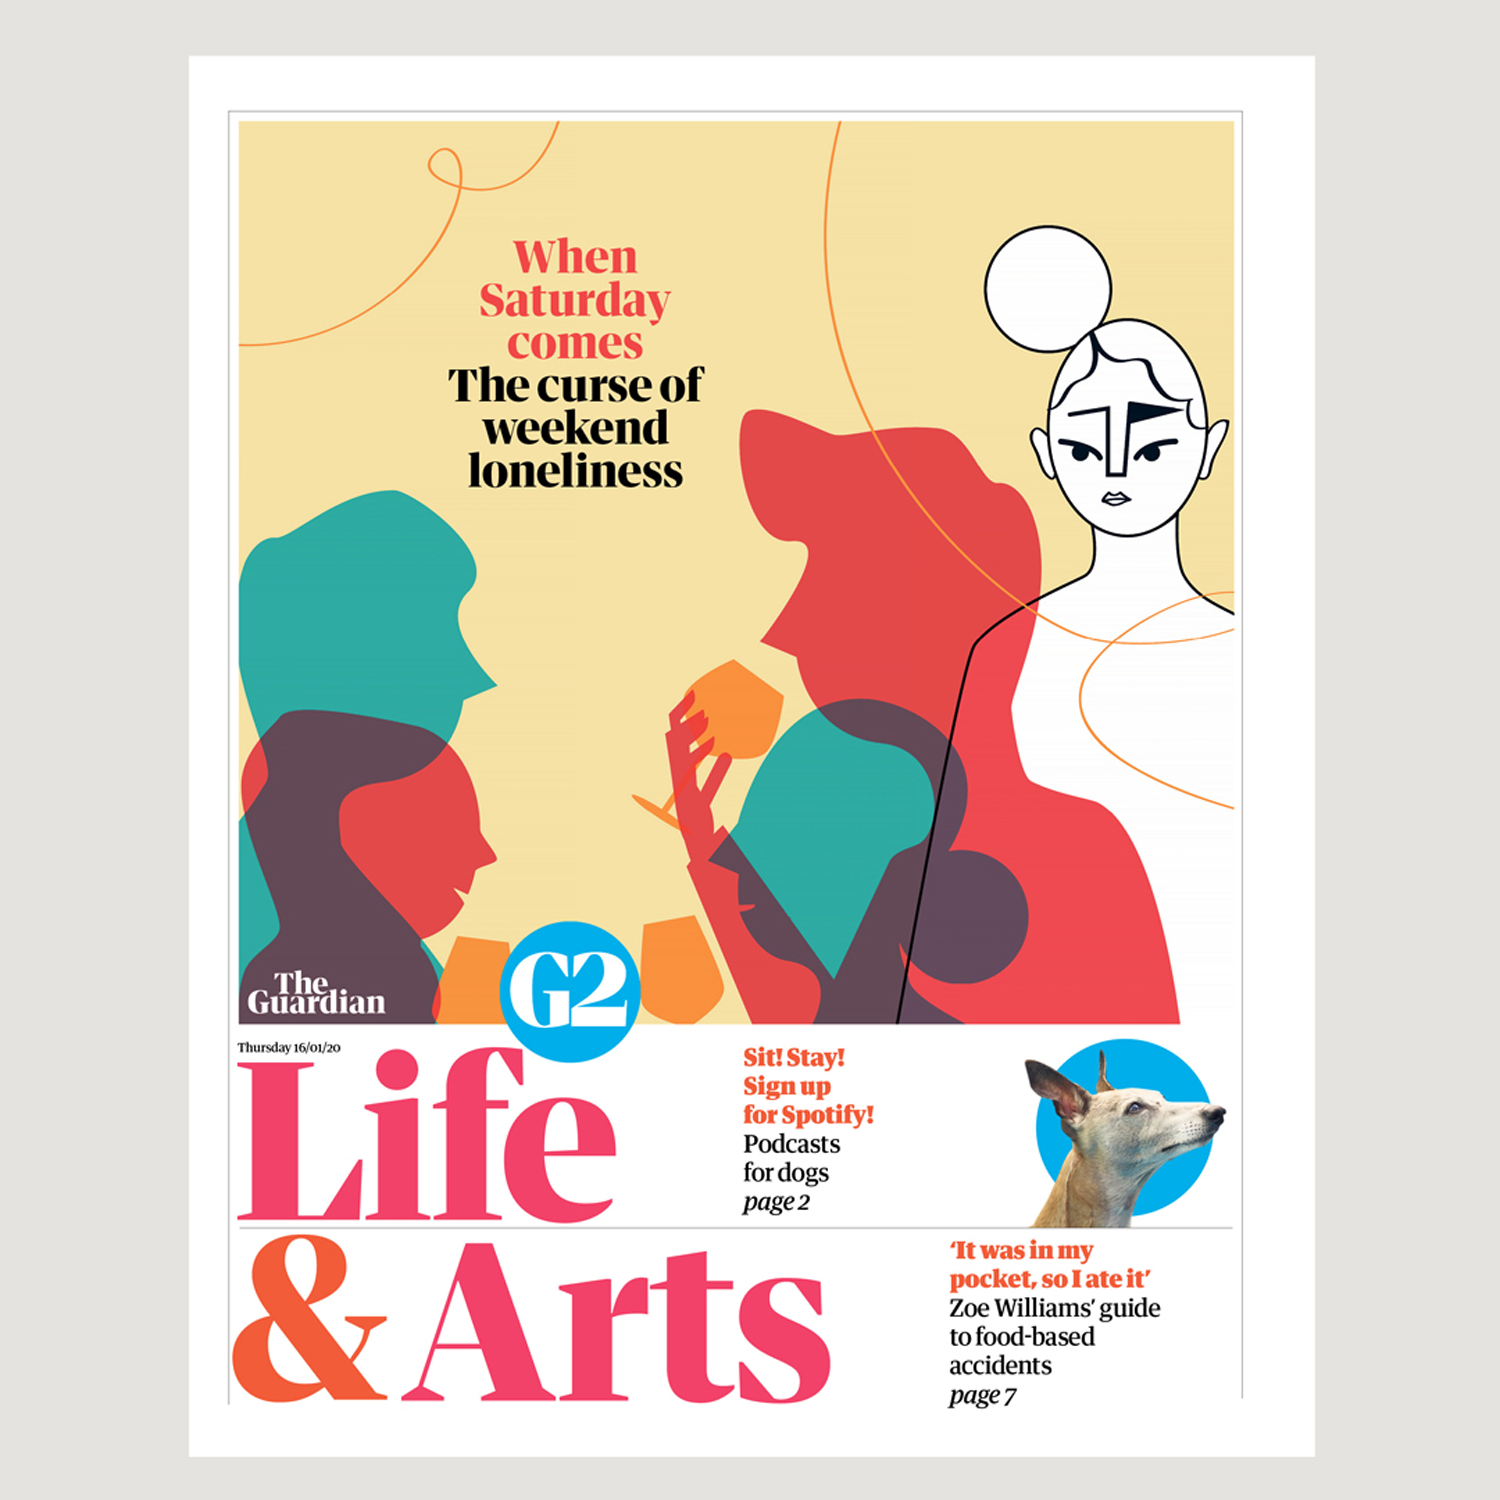 Cover, editorial illustraton for The Guardian UK about weekend loneliness illustrated by Monsie Monika Jurczyk